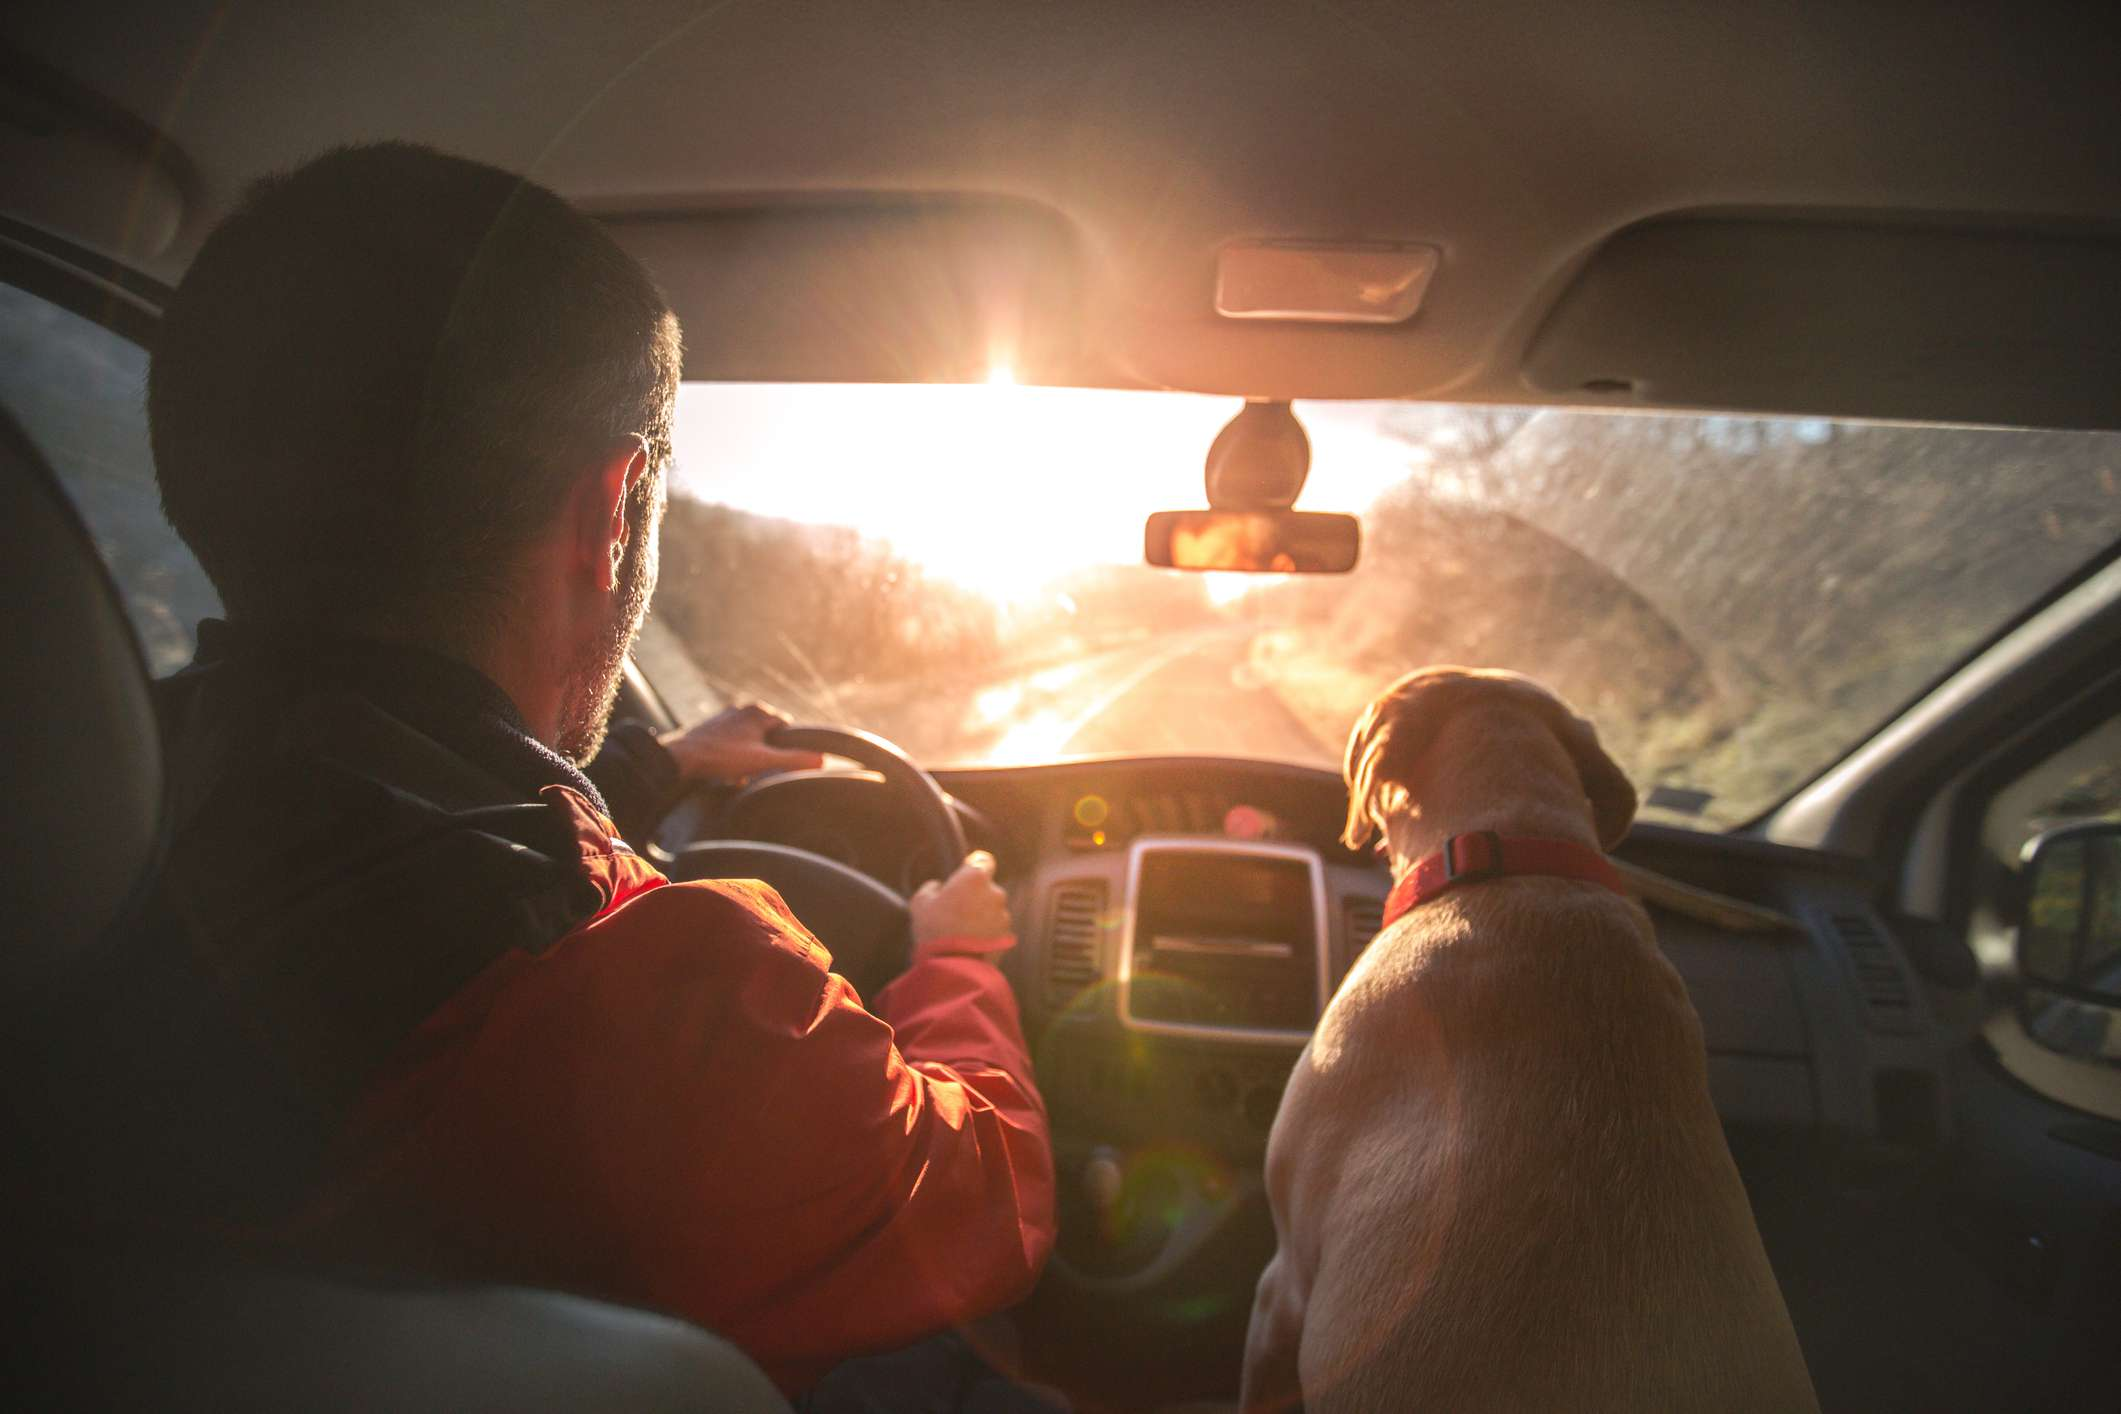 photo of car interior with a man driving the car and a dog in the passenger seat